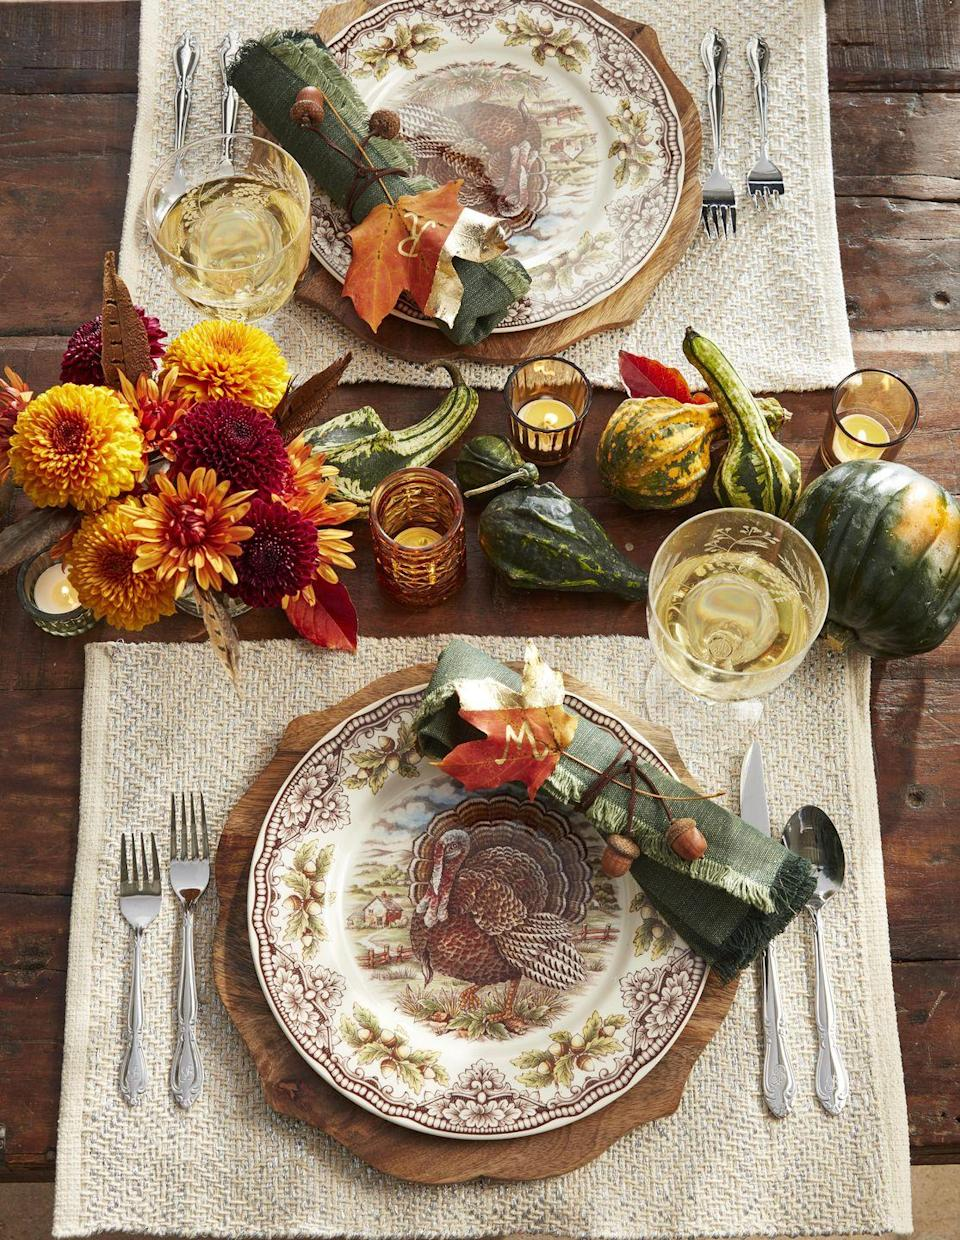 """<p>A scattering of green gourds and acorn squash laid down the center of the table and accented with orange and red flowers creates quite a pretty site. Bonus: Hot glue acorns to lengths of brown waxed twine and use to tie up rolled napkins. Apply gold leaf to a portion of a preserved maple leaf and use a gold paint pen to mark with guest's initials. </p><p><a class=""""link rapid-noclick-resp"""" href=""""https://www.amazon.com/Creative-Co-op-Natural-Harvest-Fillers/dp/B07X4JDNZH/ref=sr_1_7?tag=syn-yahoo-20&ascsubtag=%5Bartid%7C10050.g.2130%5Bsrc%7Cyahoo-us"""" rel=""""nofollow noopener"""" target=""""_blank"""" data-ylk=""""slk:SHOP DRIED GOURDS"""">SHOP DRIED GOURDS</a><br></p>"""